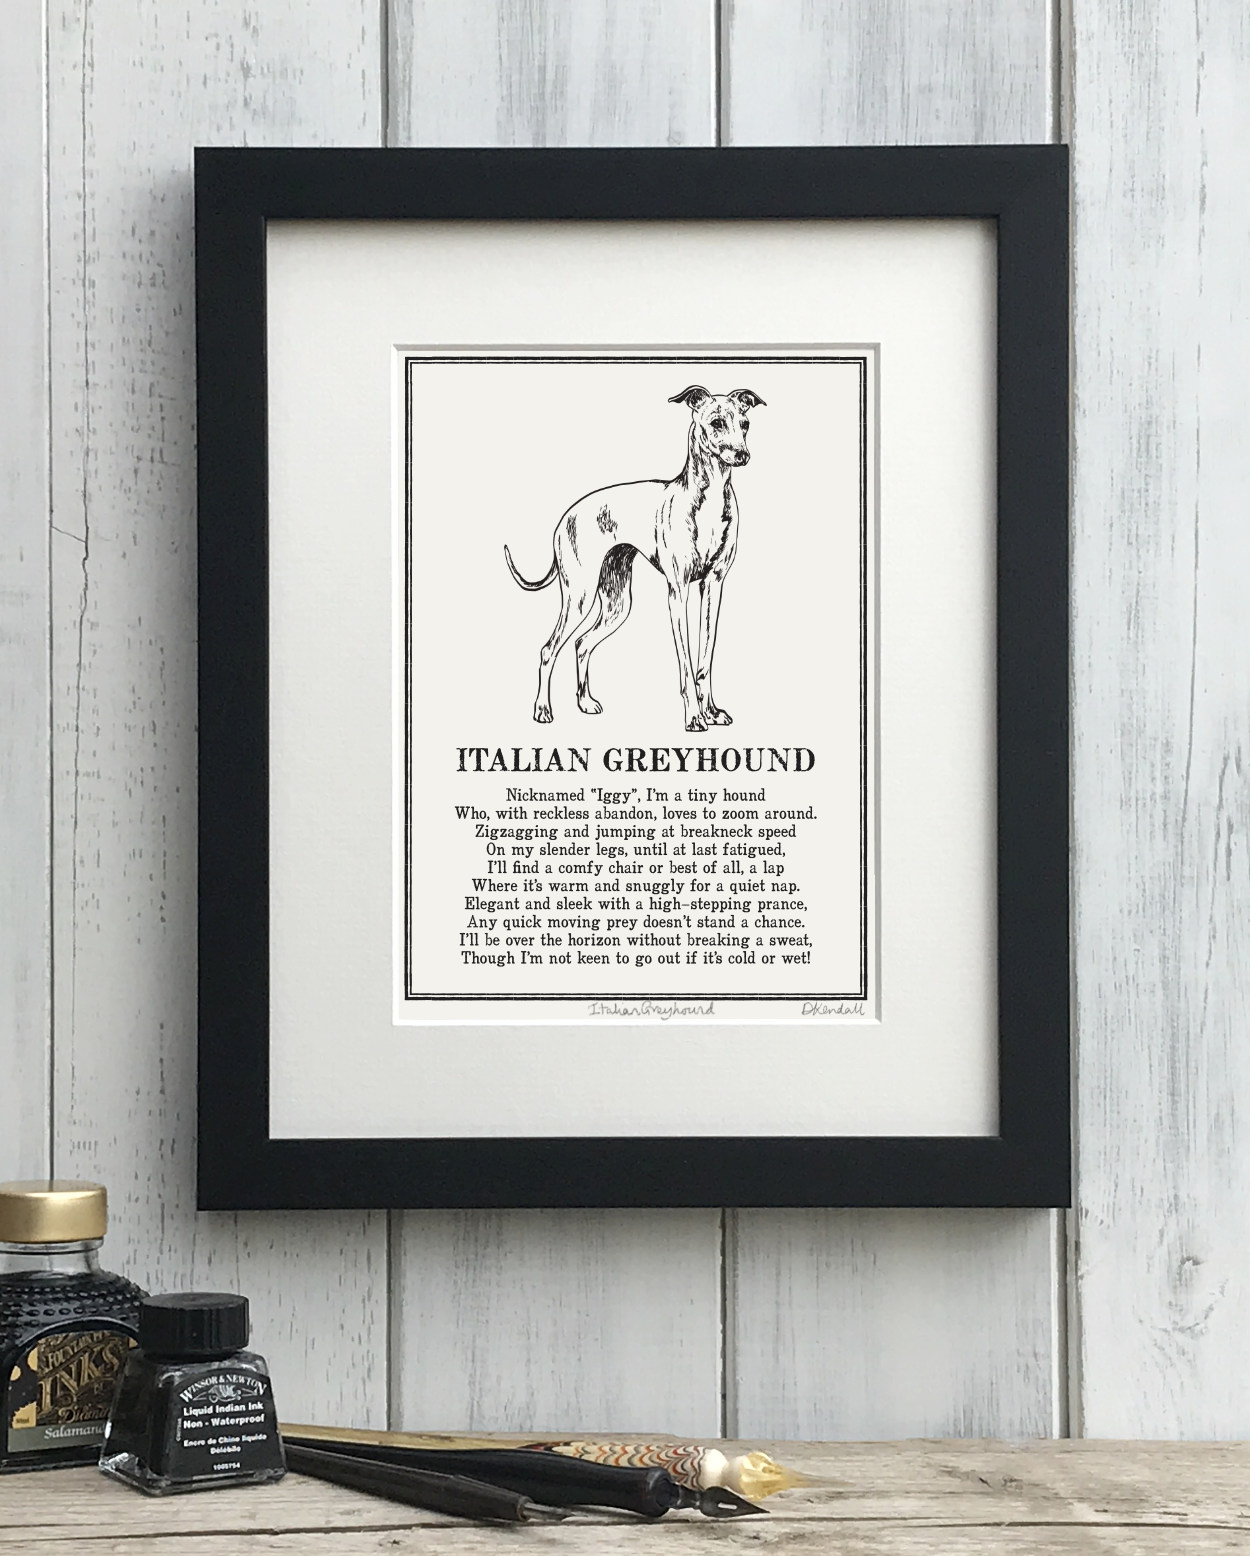 Italian Greyhound print illustrated poem by The Enlightened Hound